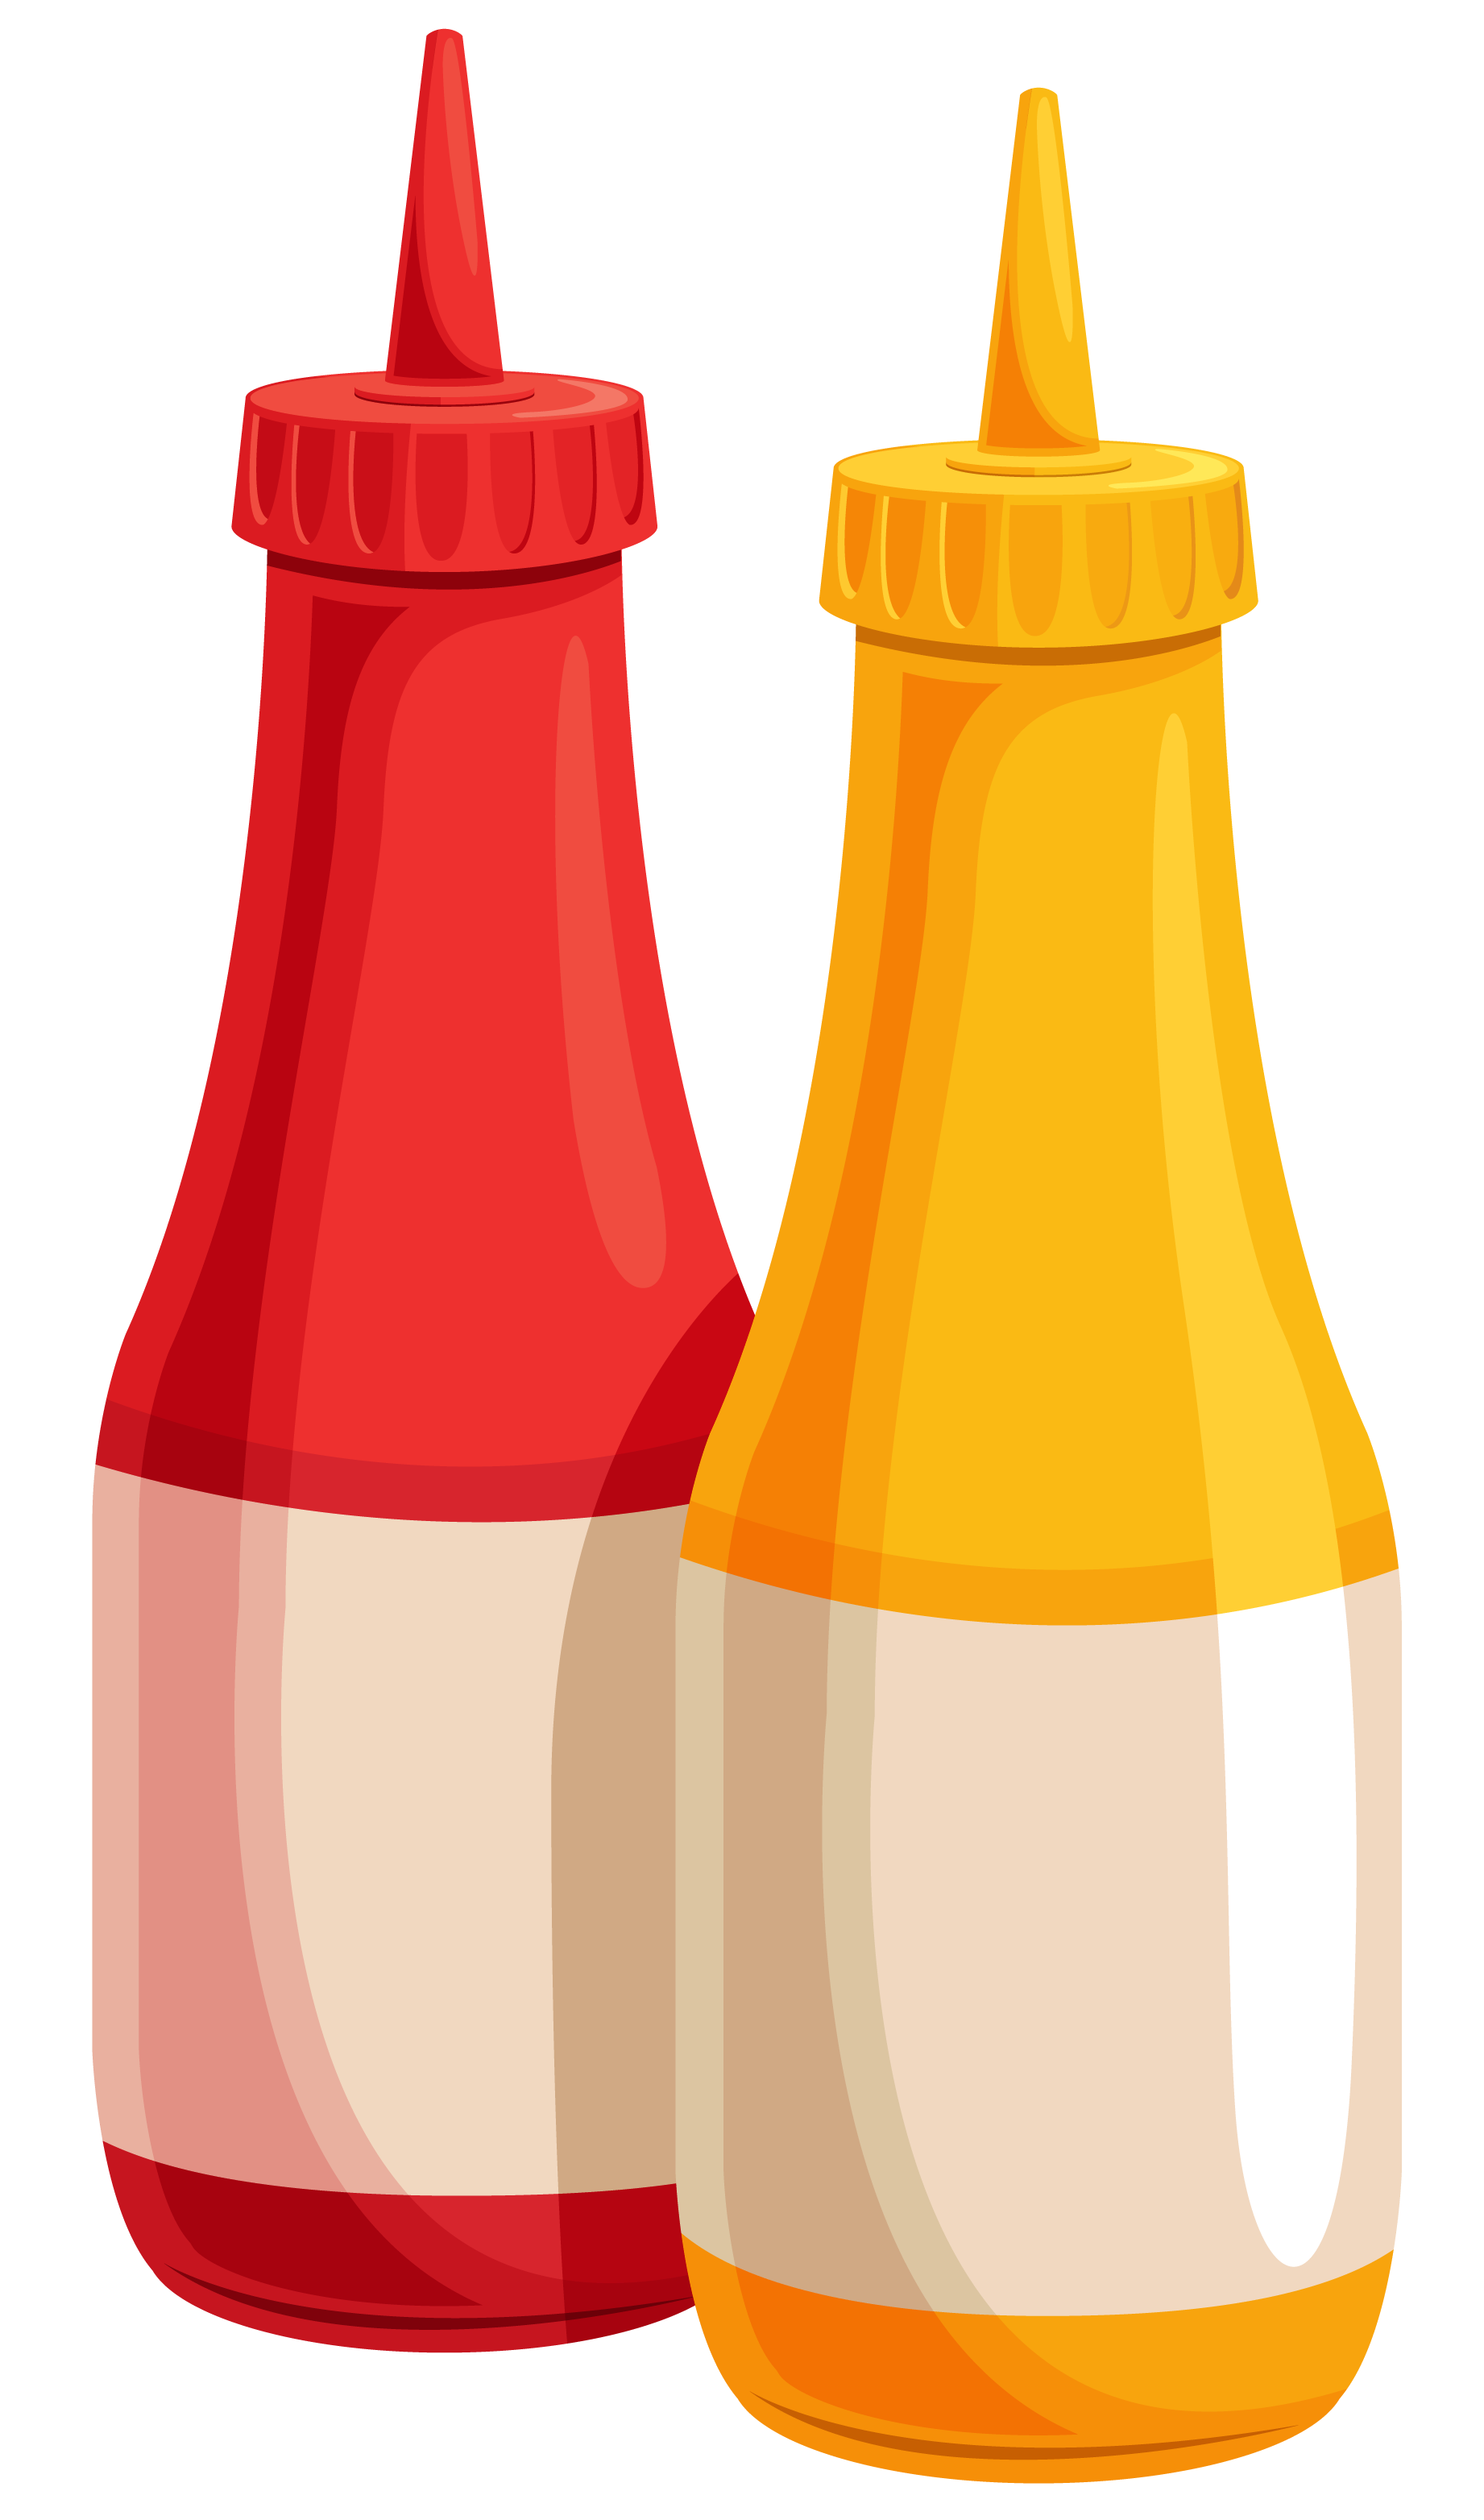 Ketchup and mustard png. Bottles clipart image gallery